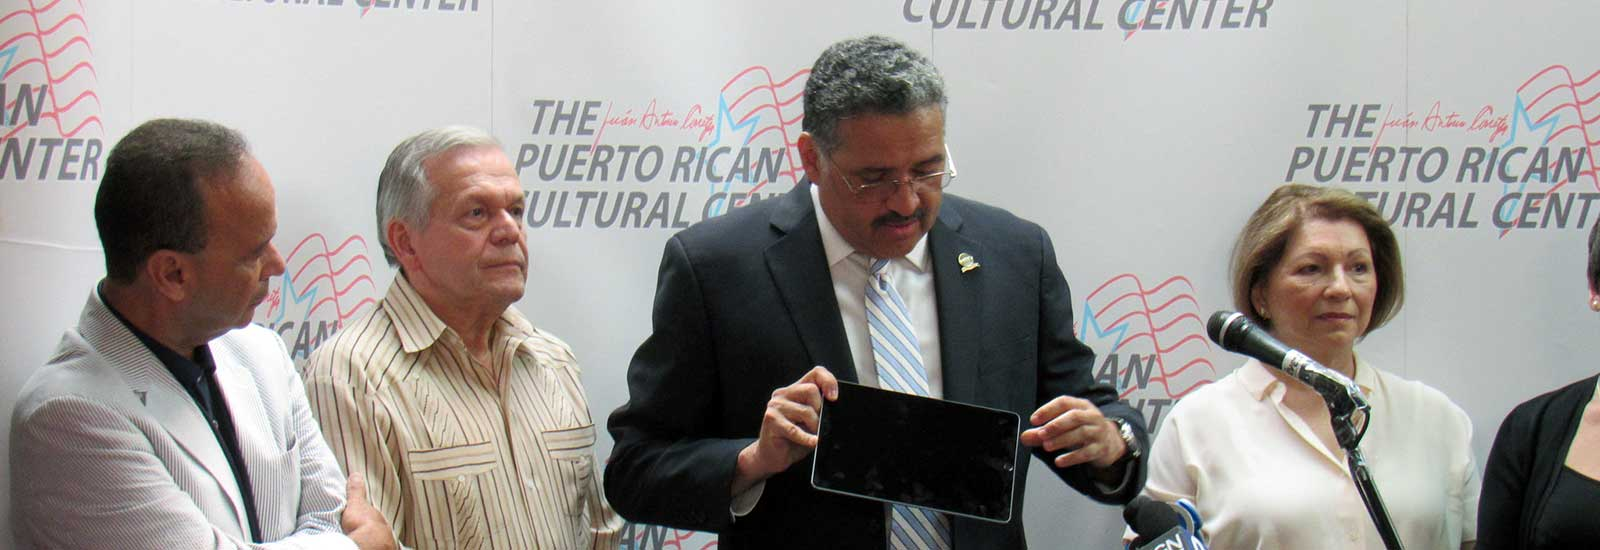 HITN Visits Chicago to Support Fiesta Boricua 2018 and Donates 100 iPads